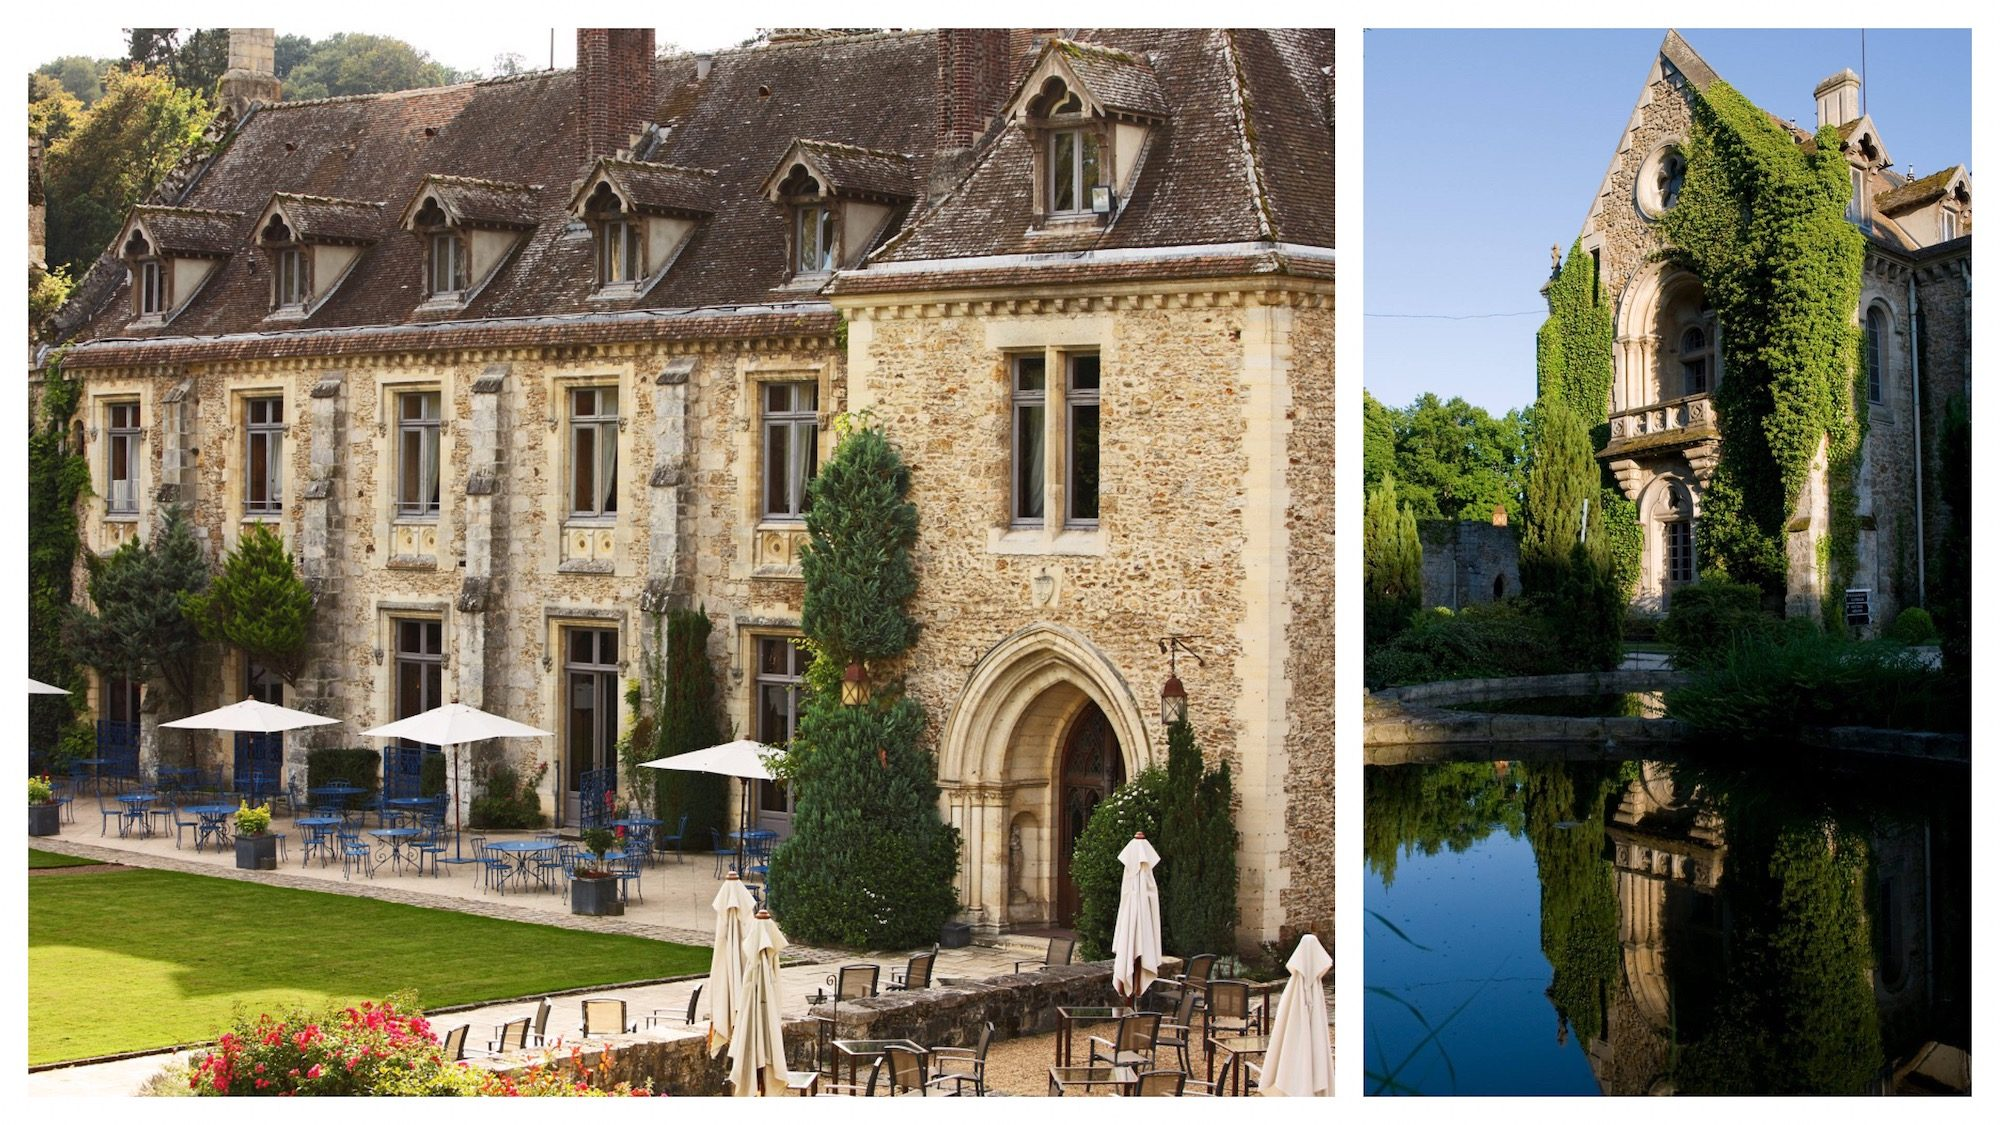 Abbaye des Vaux de Cernay and its back terrace with tables sheltered from the sun with white parasols (left). The abbey's ivy-clad exterior.